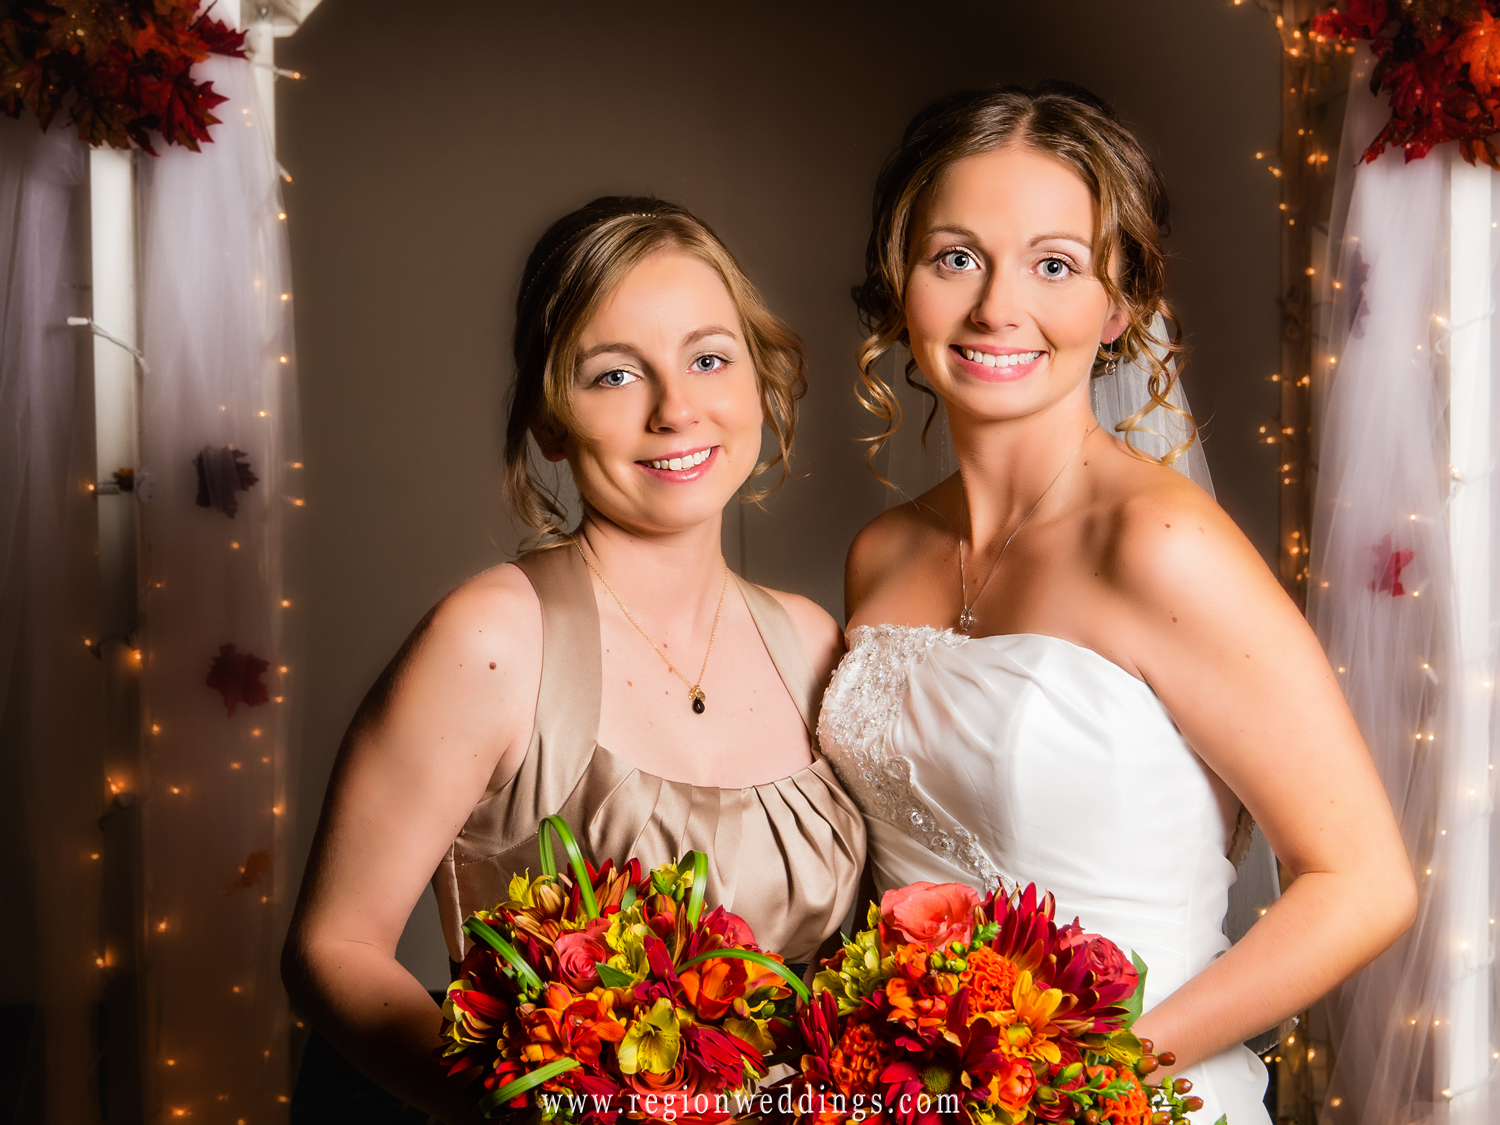 The bride's sister and maid of honor poses for a portrait surrounded by autumn decorations at The Patrician.